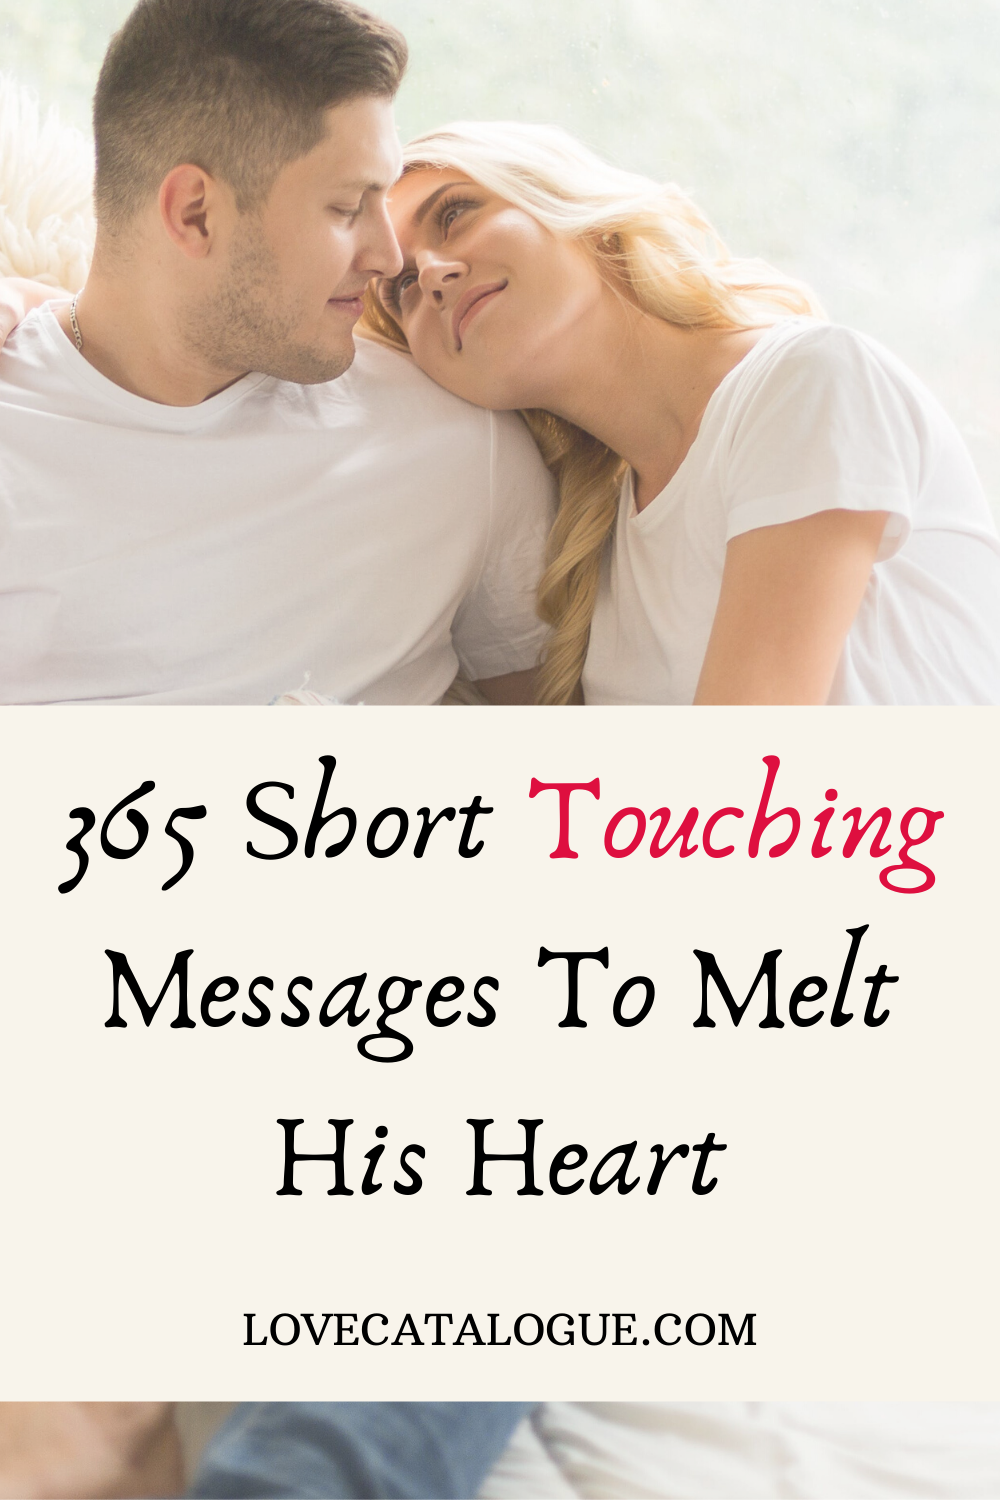 inspirational love messages for him